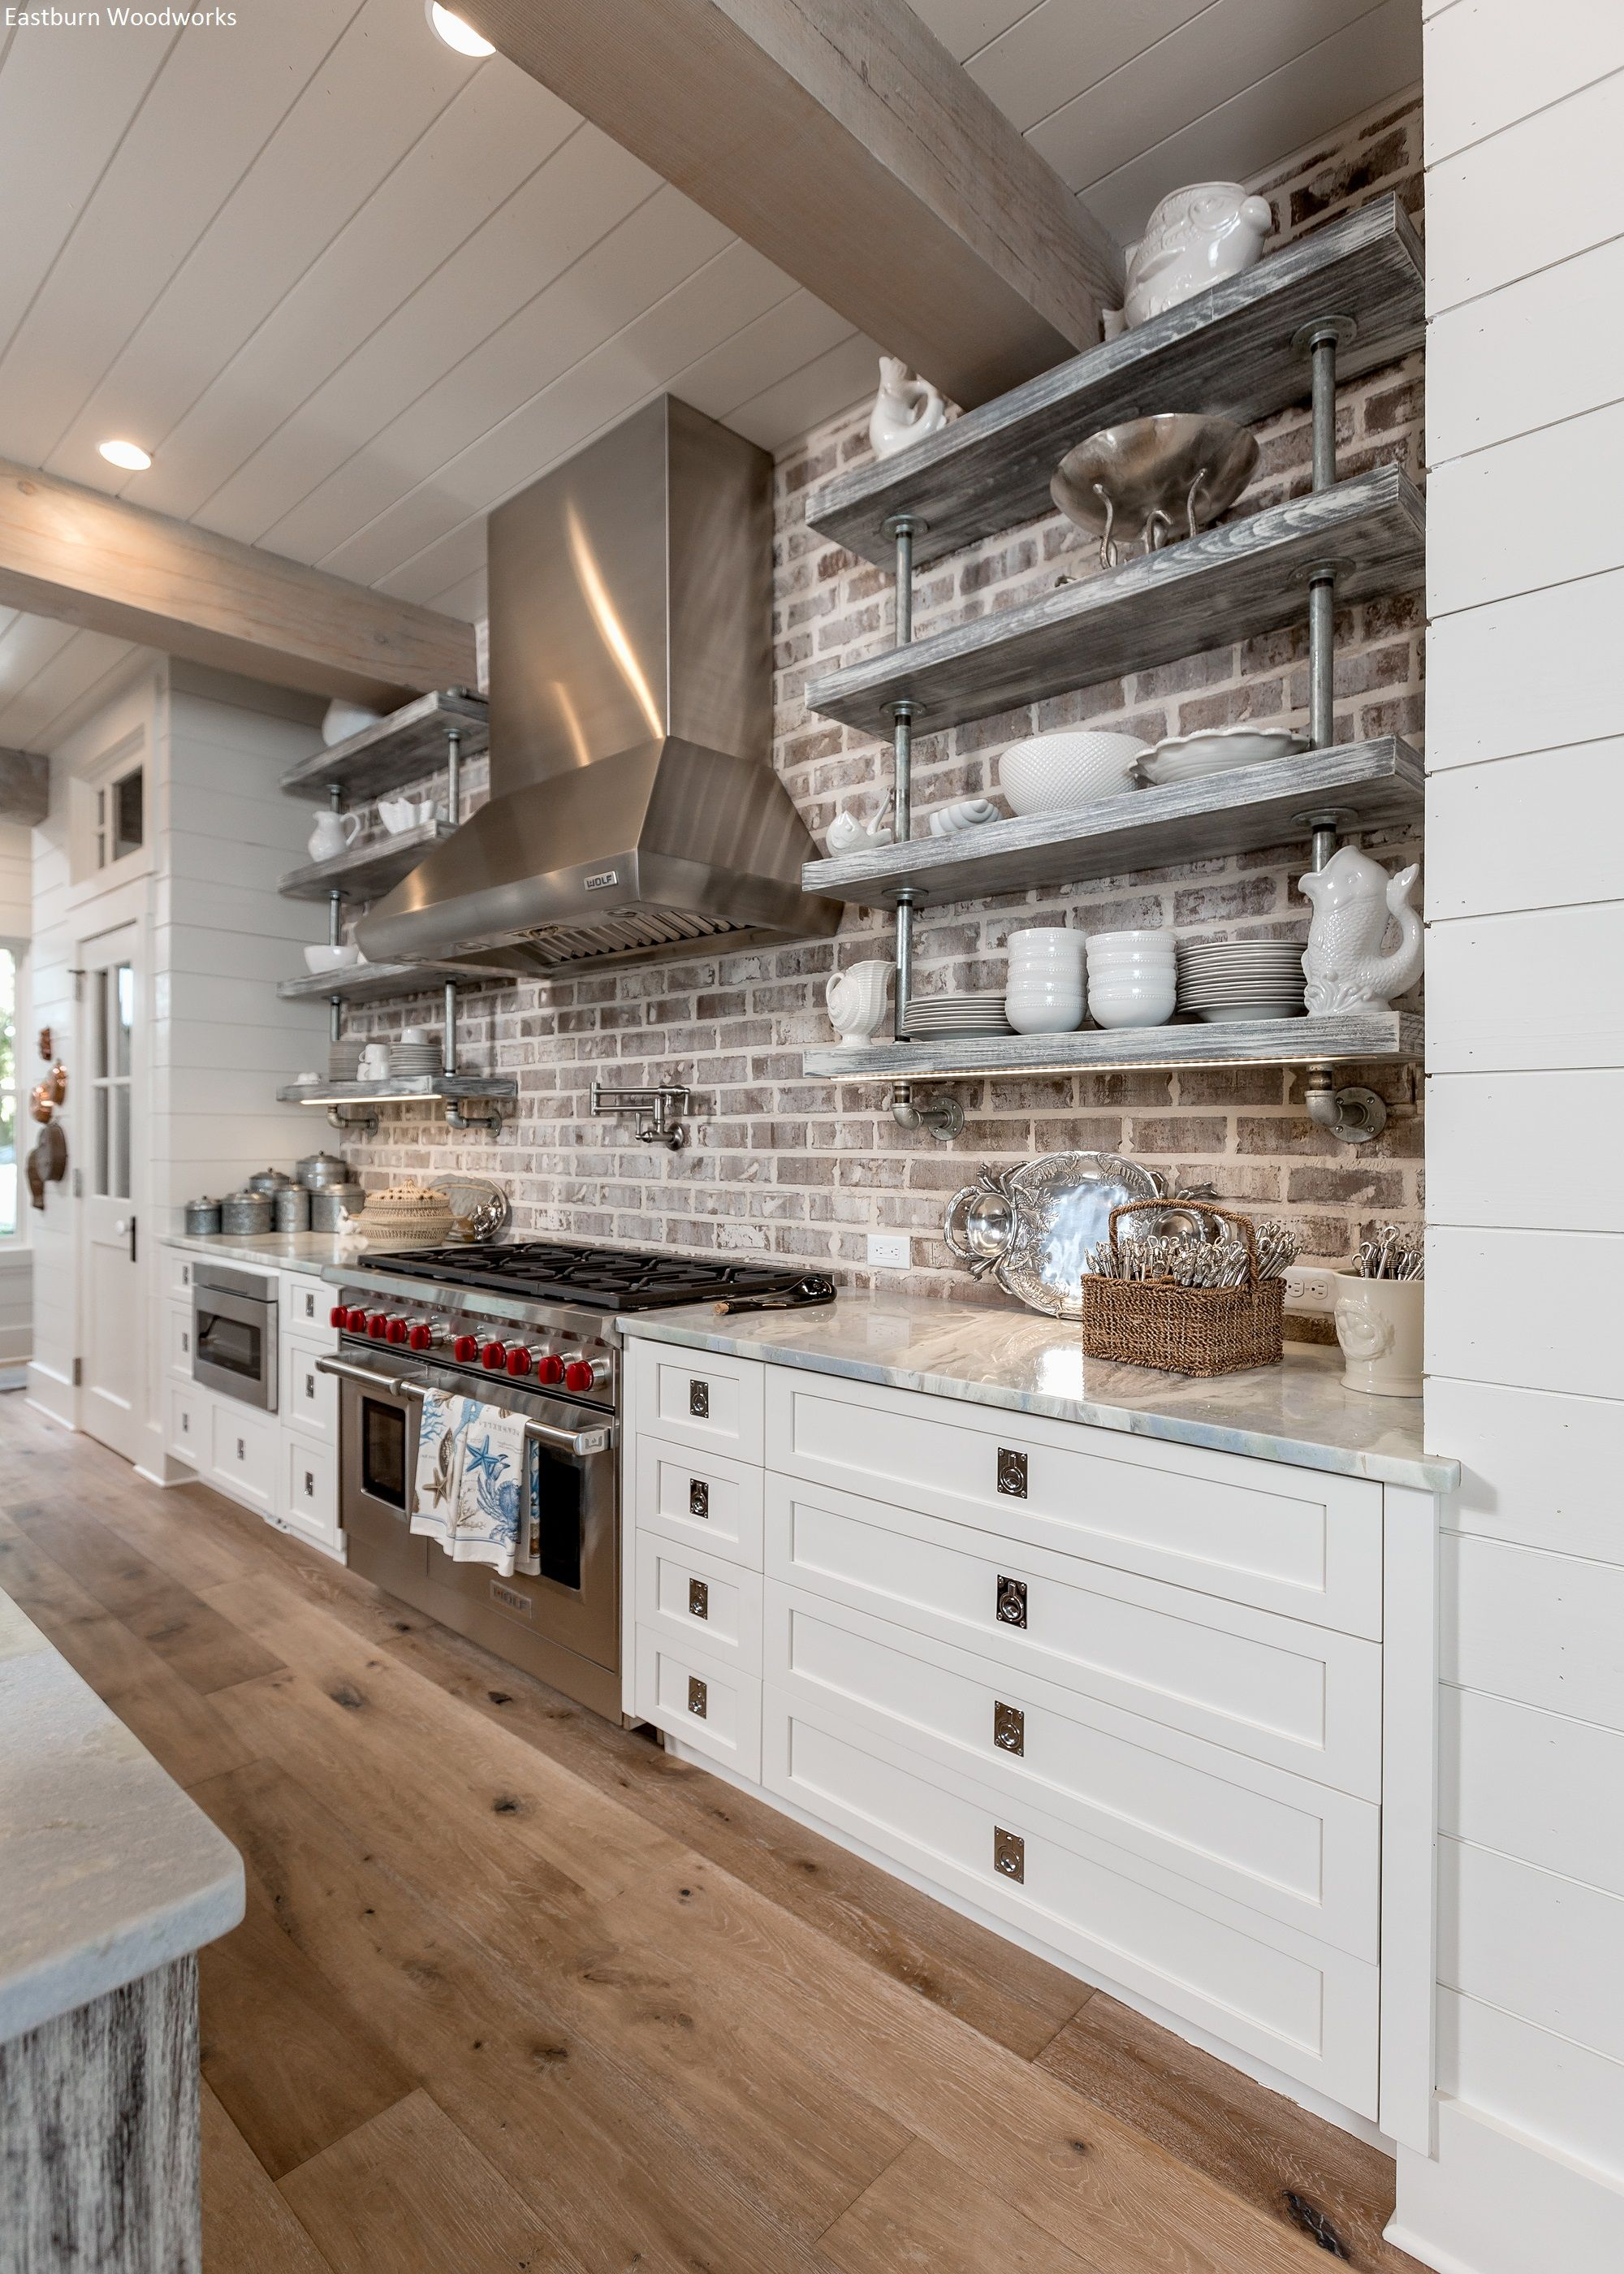 Use tile as back round for cabinets kitchen pinterest barn